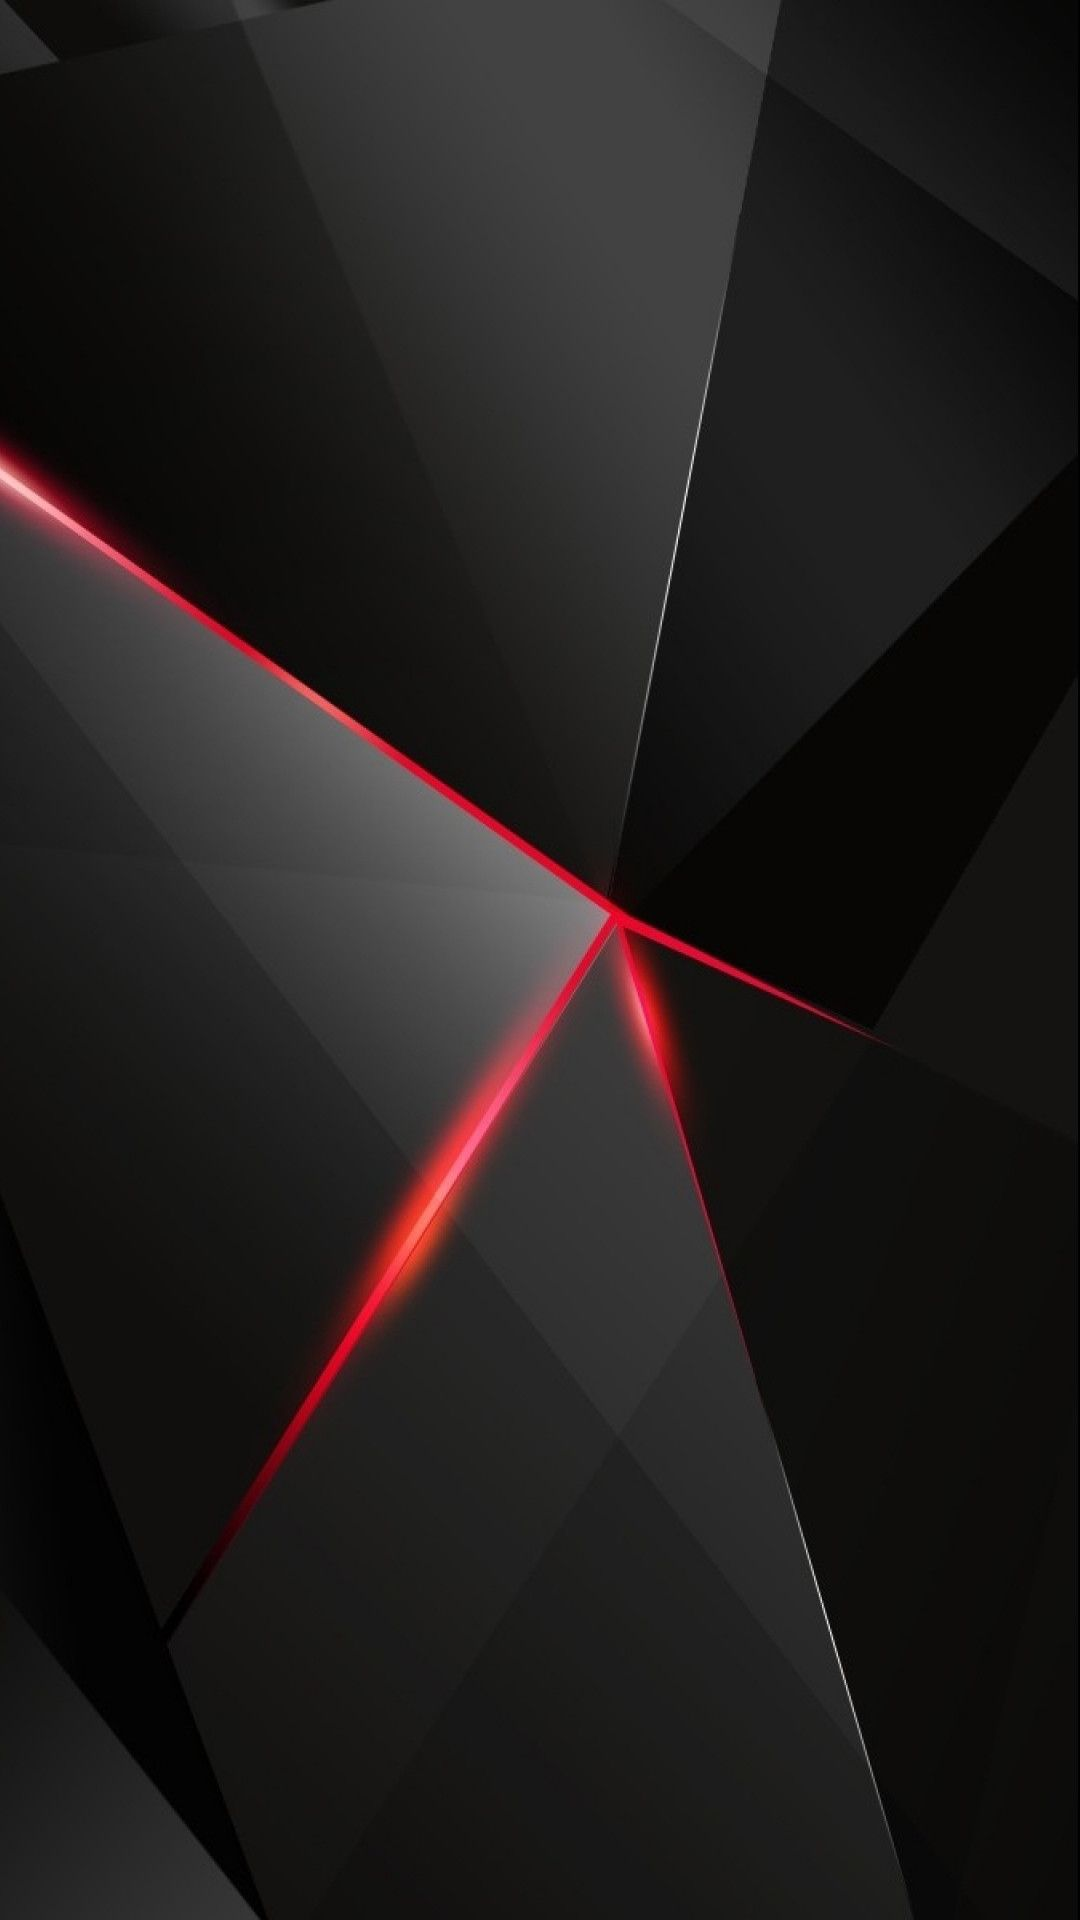 Black And Red Iphone Wallpaper 67 Images Black Wallpaper Android Wallpaper Black Hd Cool Wallpapers